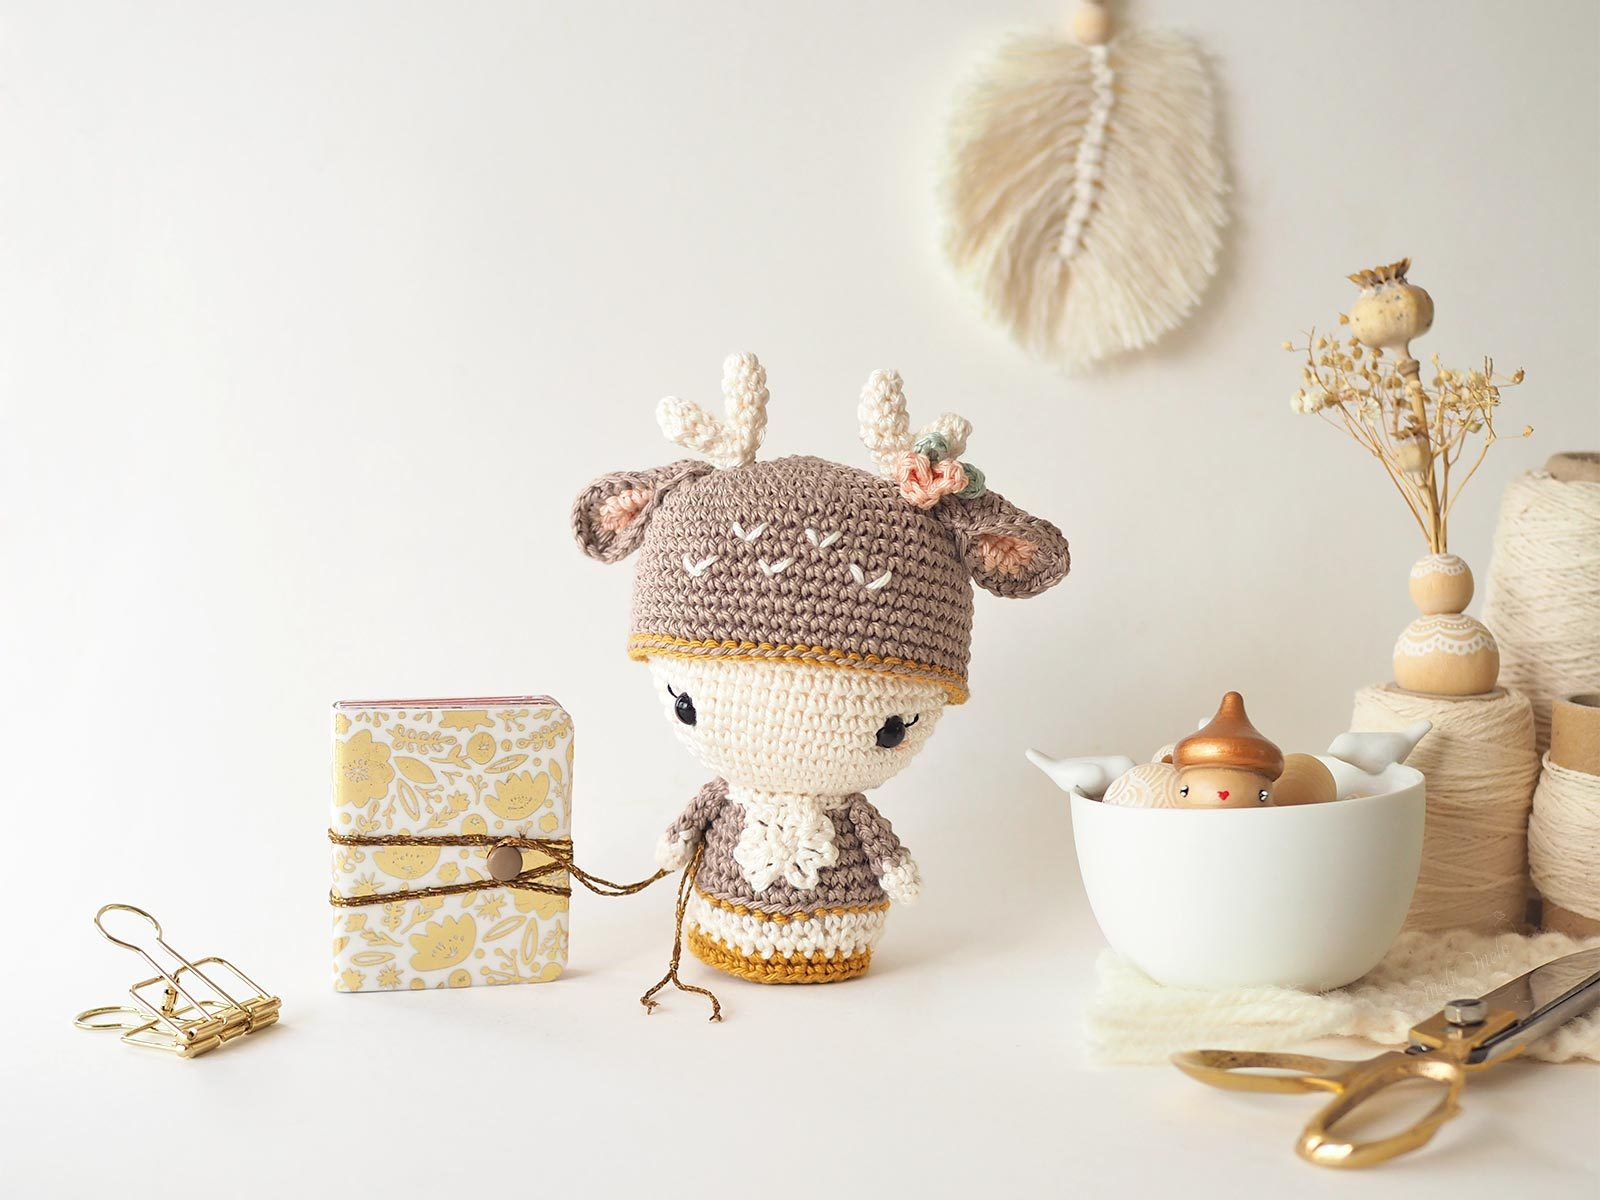 scrapbooking crochet mini album amy tangerine annie deer aradiya toys laboutiquedemelimelo